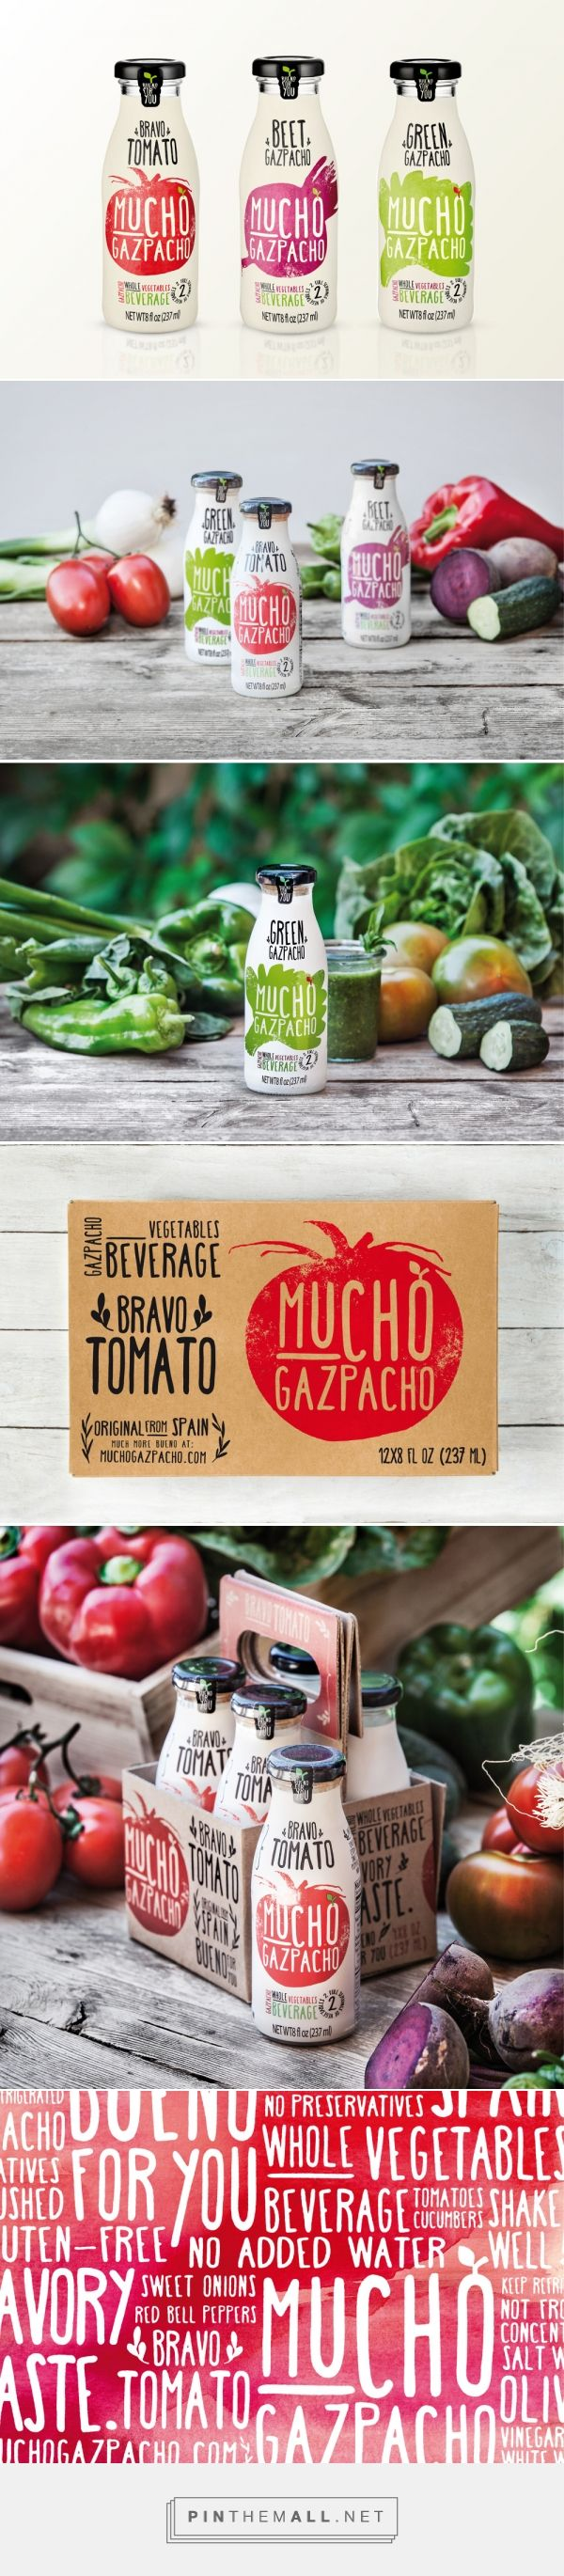 Mucho Gazpacho Packaging - Estudio Versus. Diseño gráfico, comunicación, campañas publicitarias, identidad corporativa, packaging, editor... - a grouped images picture - Pin Them All